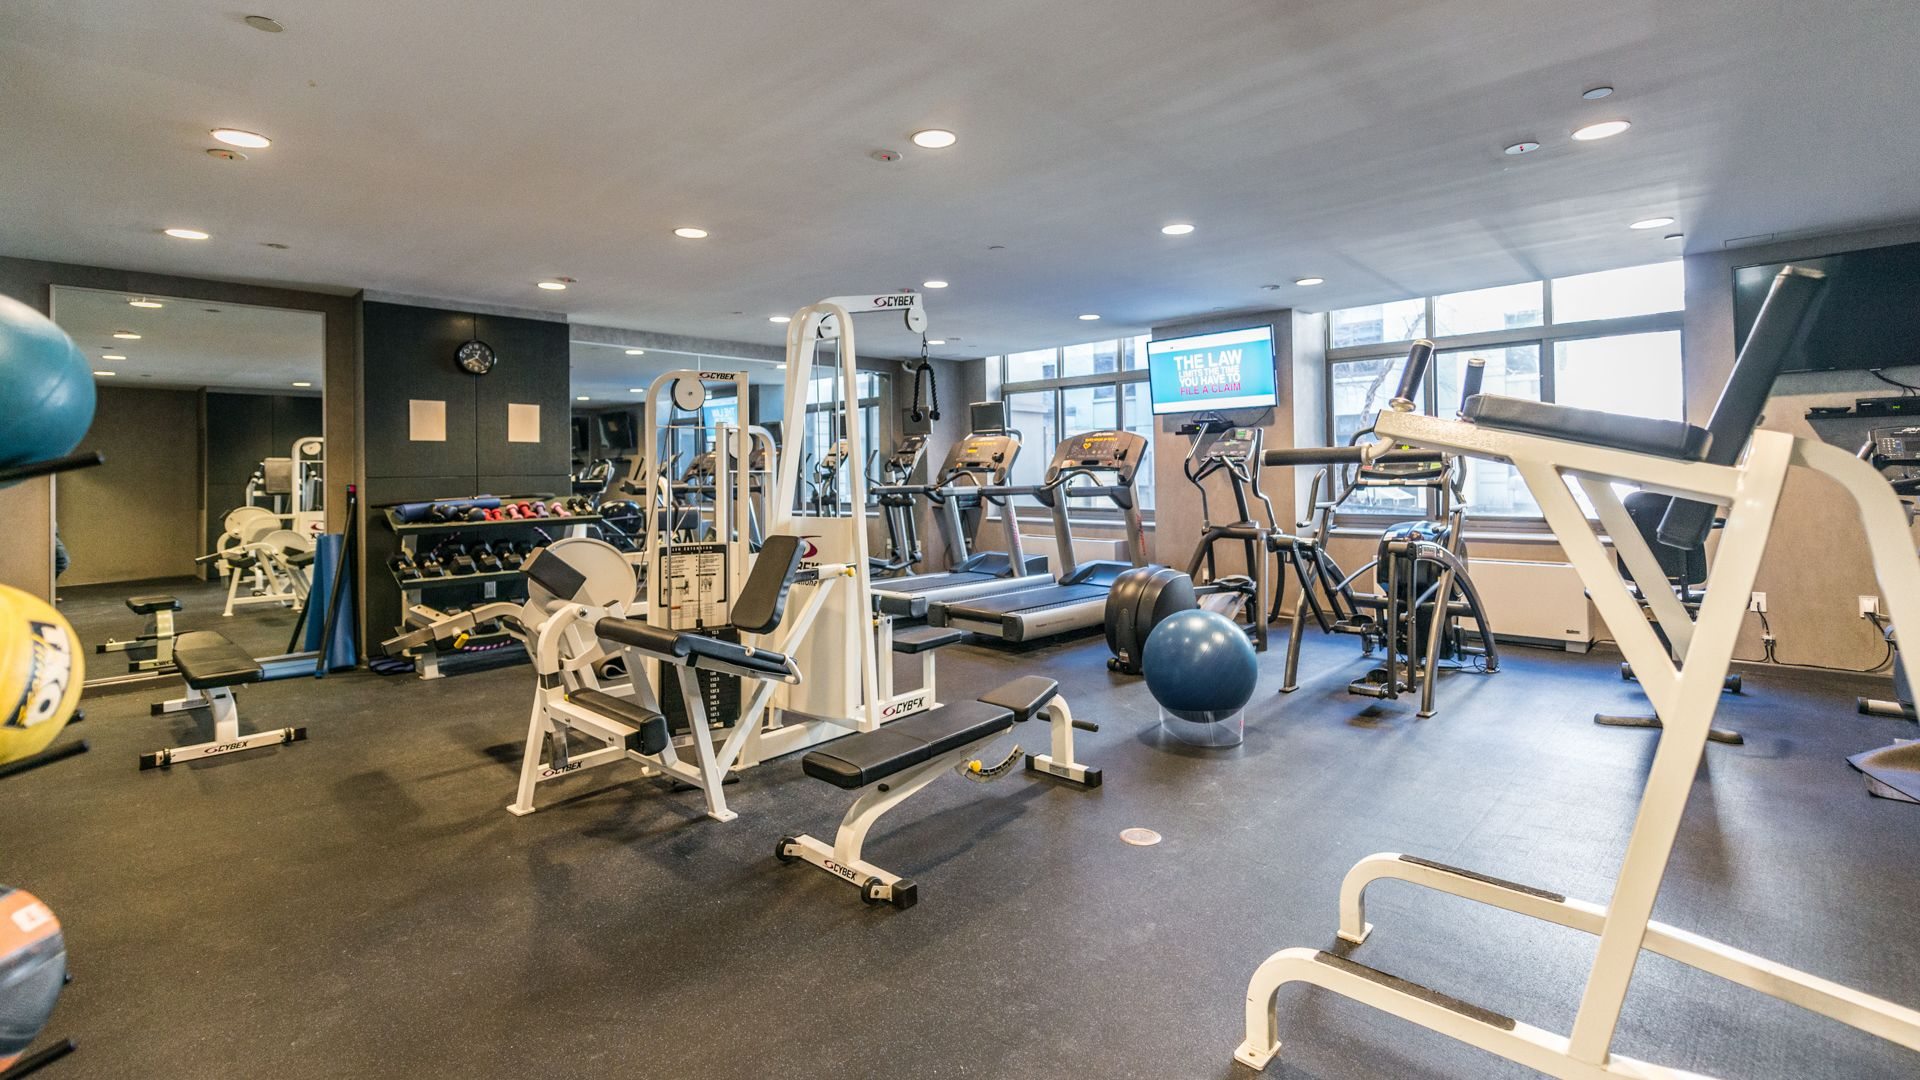 600 Washington Apartments - Fitness Center